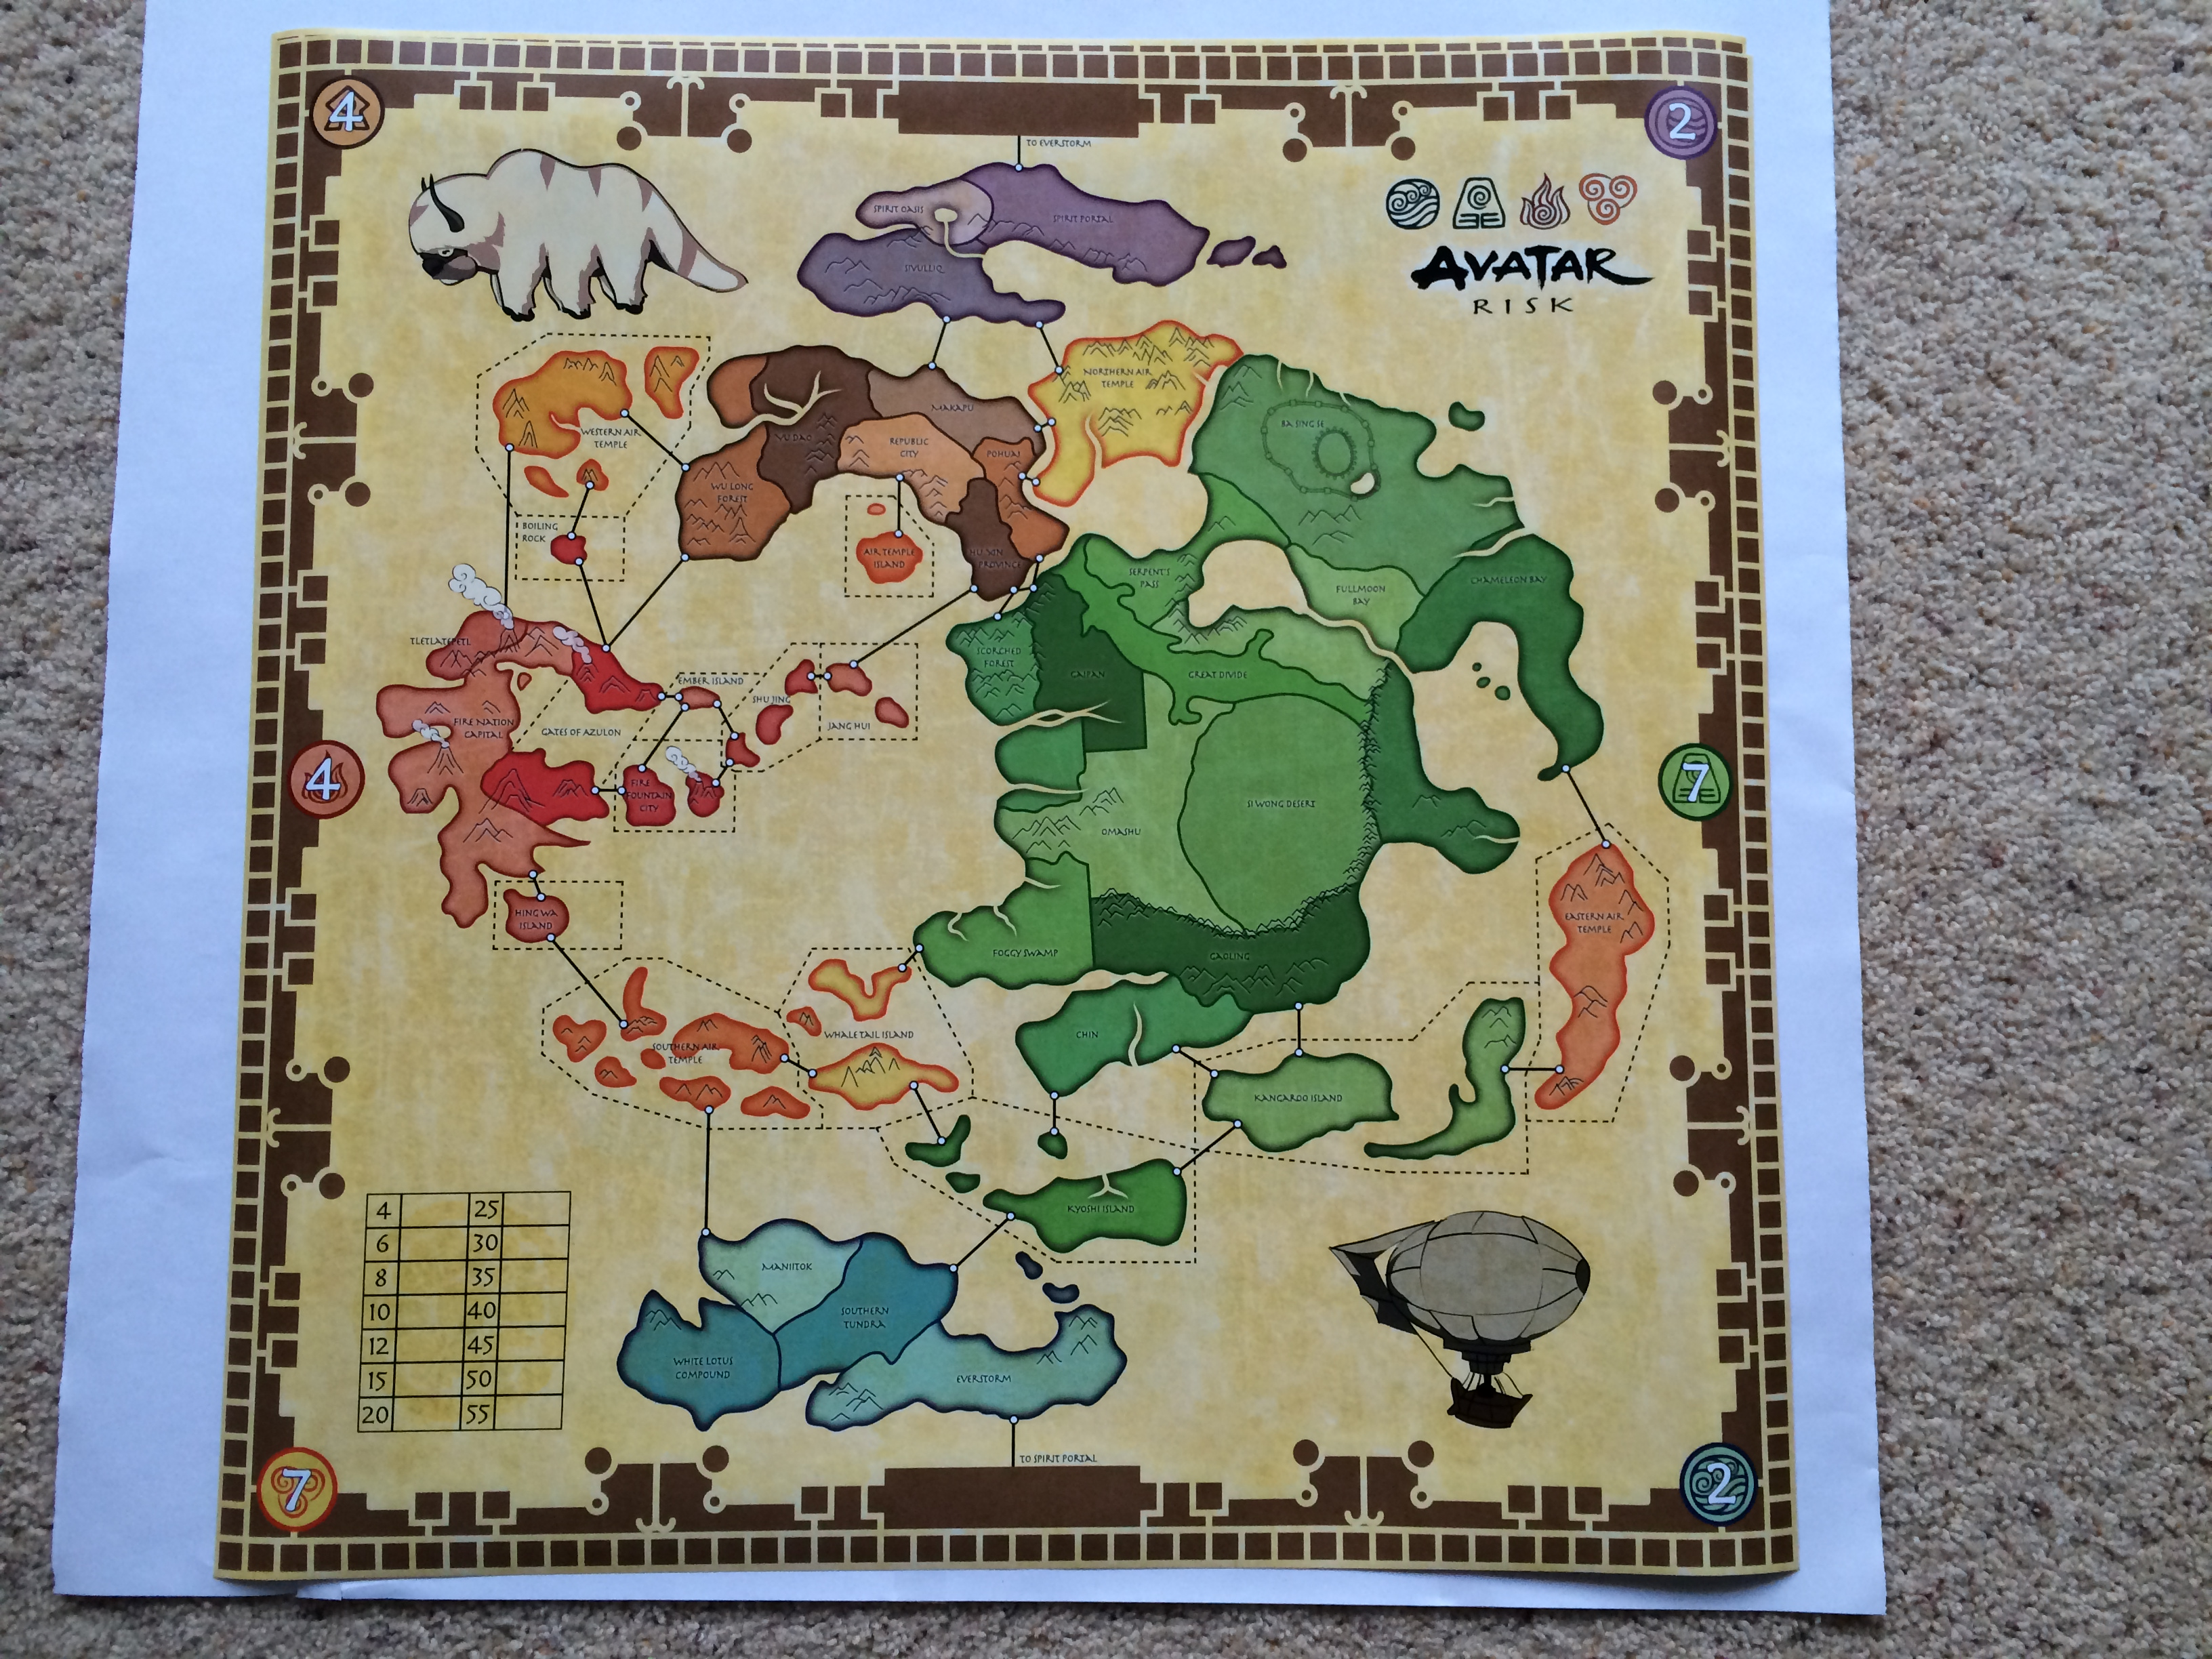 Avatar The Last Airbender Risk Gameboard Tested